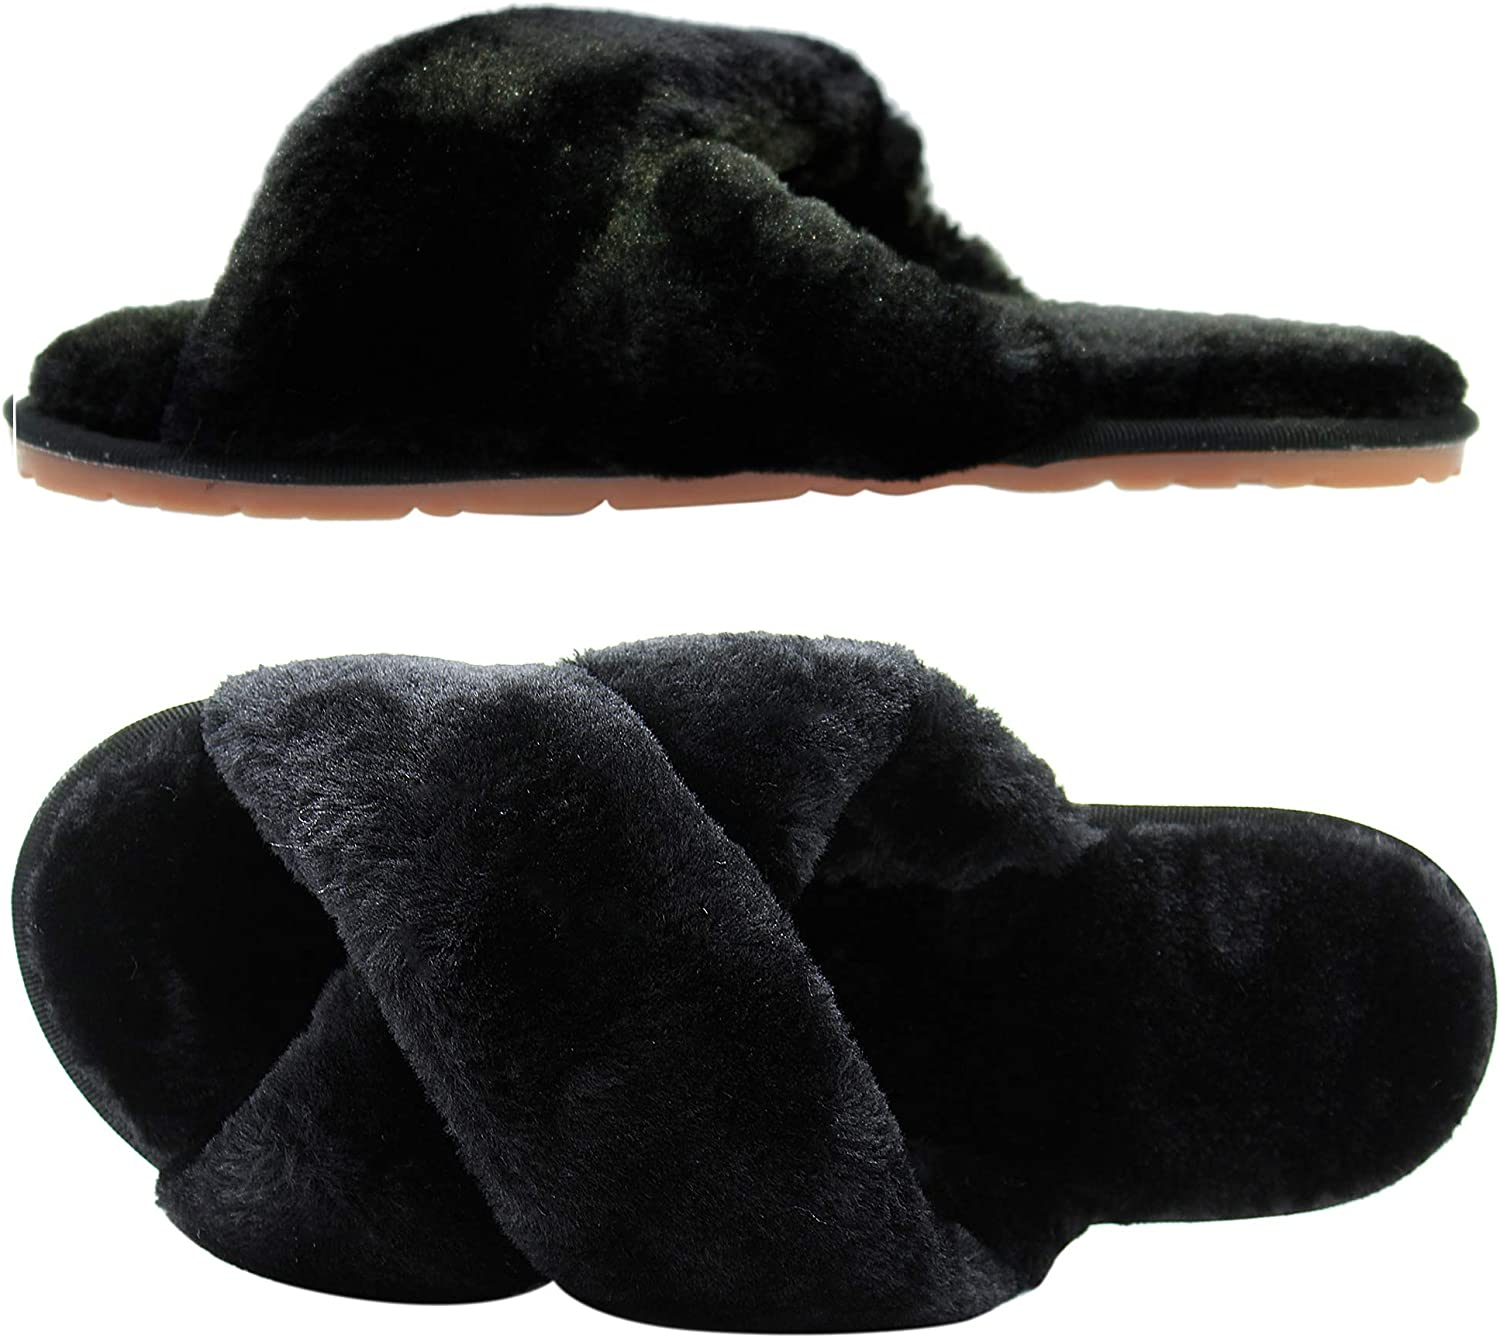 Women's OFFicial Fuzzy New sales Slippers Cross Band House Open Toe Slide